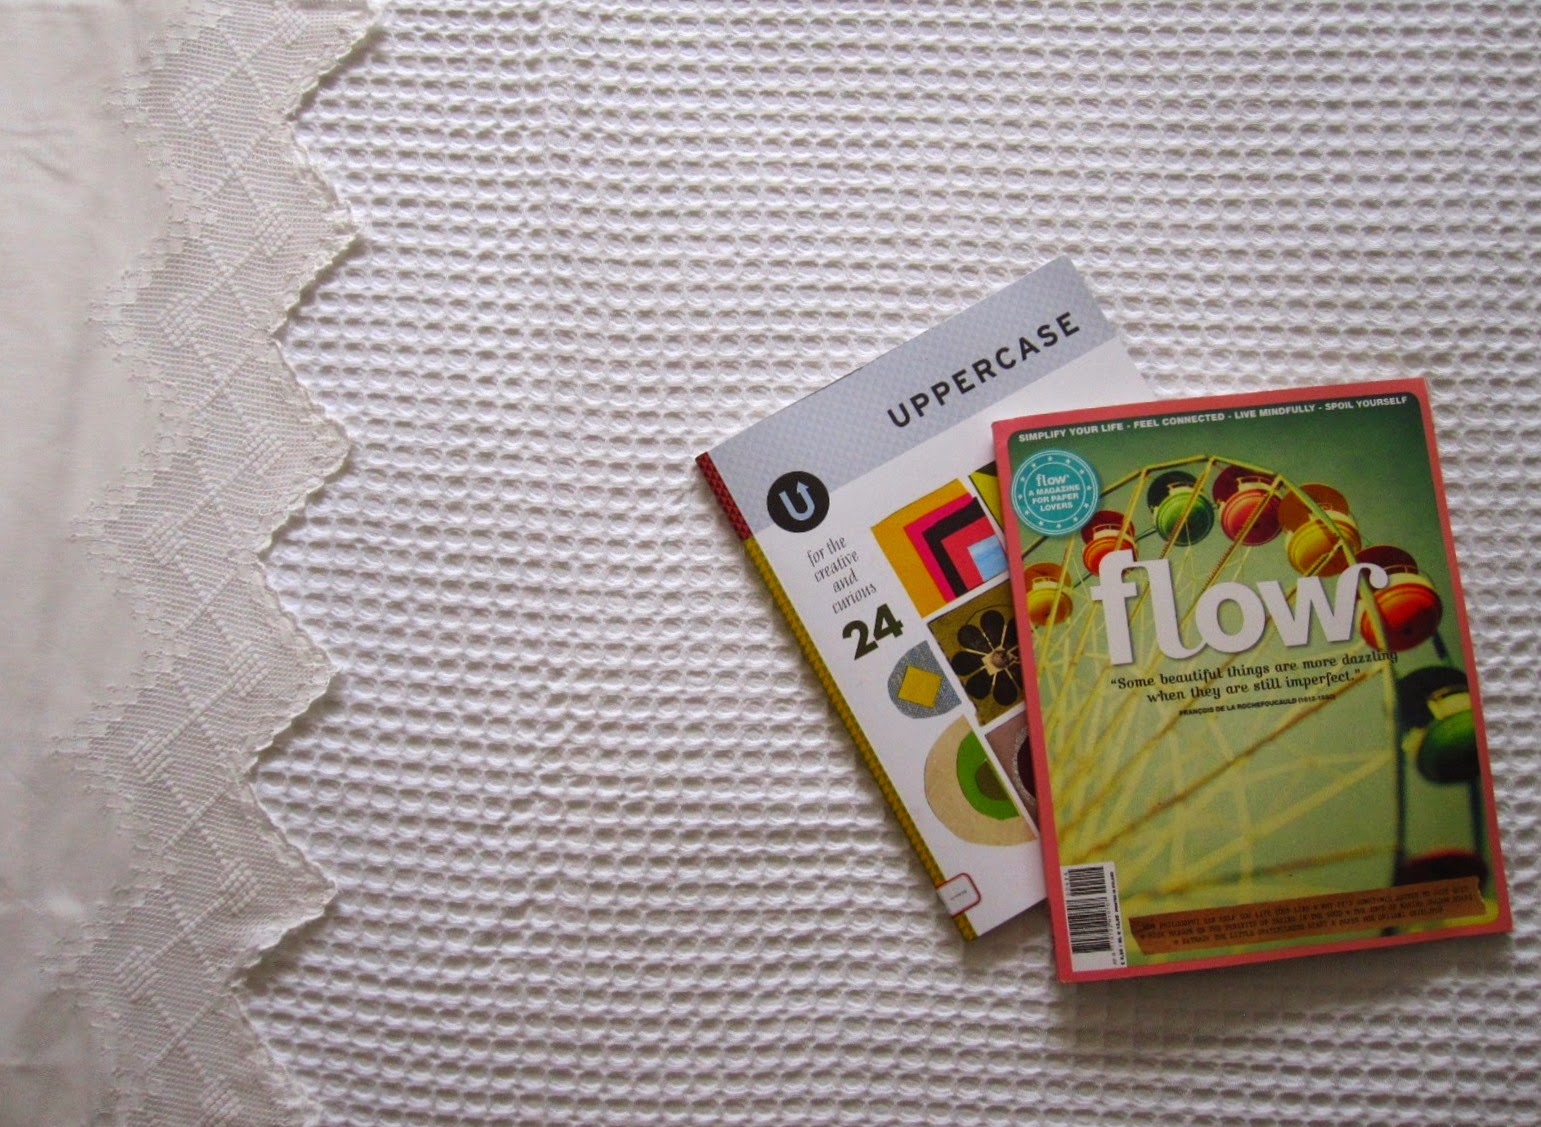 Close up of a freshly-made bed with a white waffle-weave blanket and a copy of Flow magazine and Uppercase magazine on it.